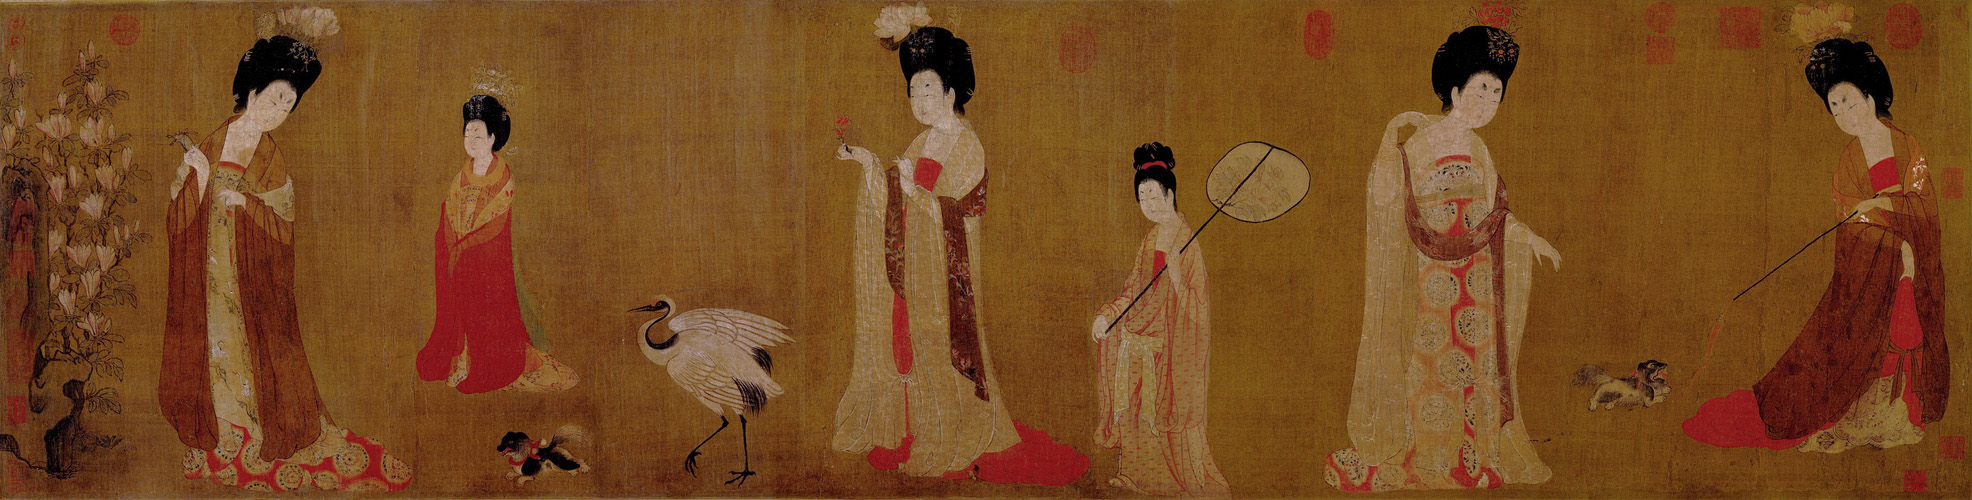 Zhou Fang: Court Ladies with Flowered Headdresses